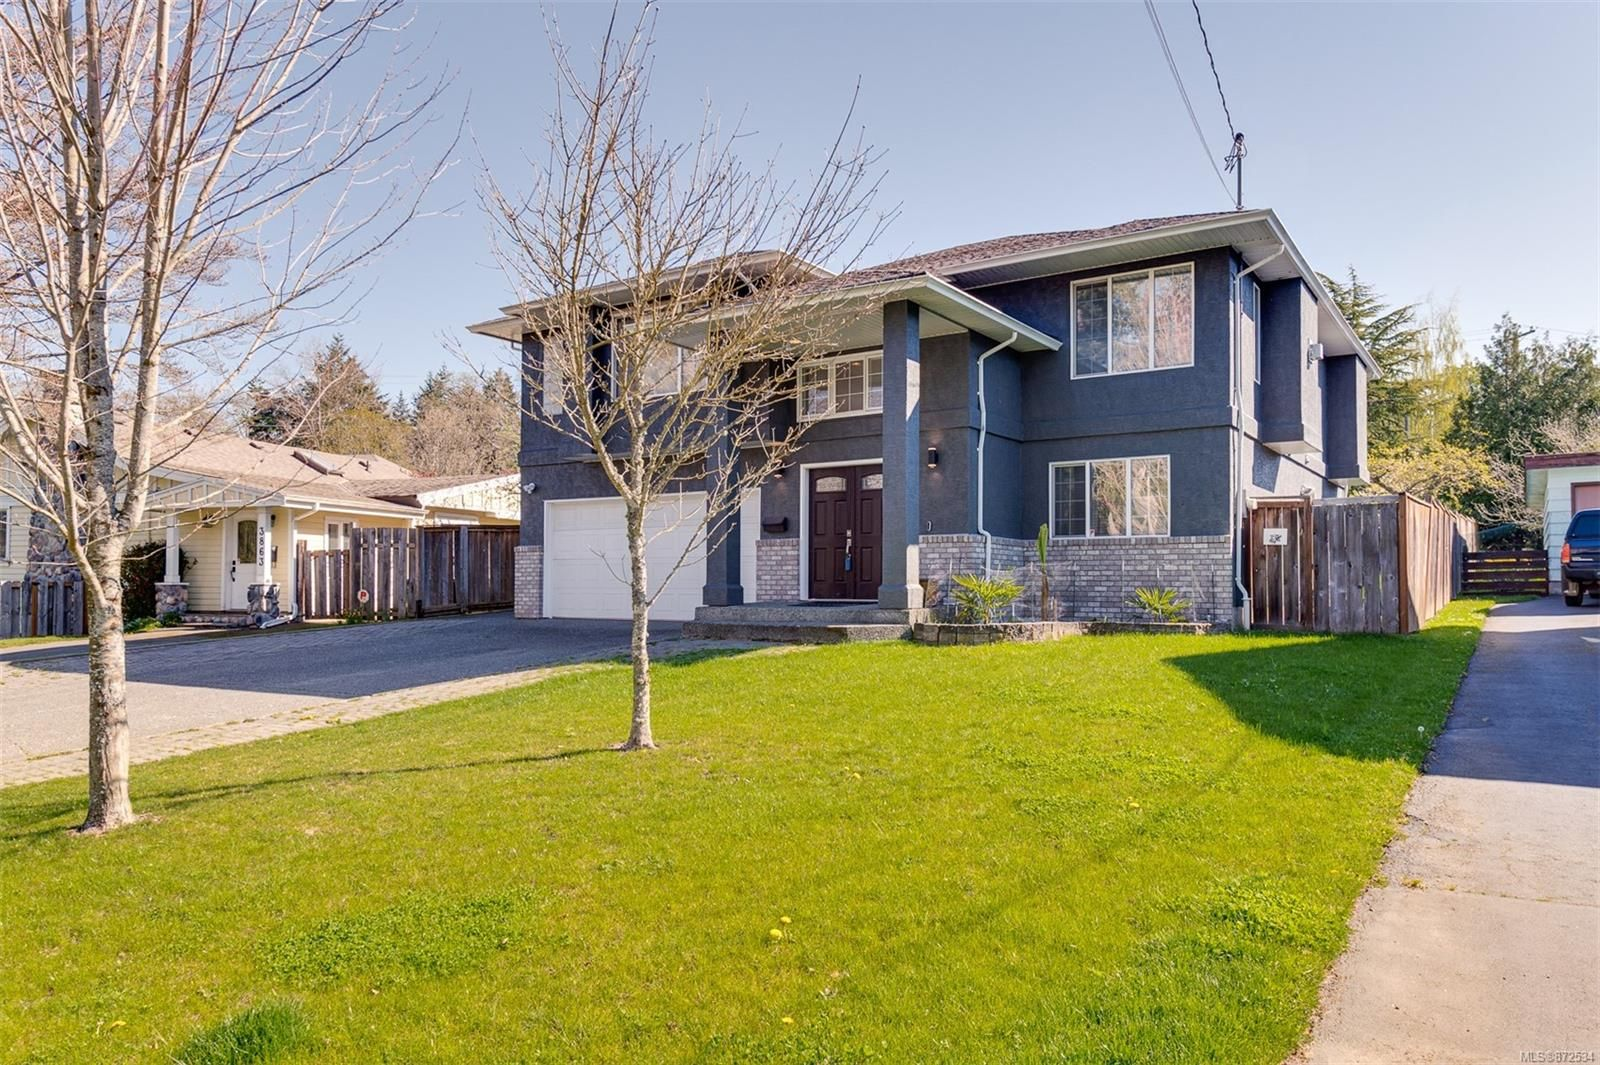 Main Photo: 3859 Epsom Dr in : SE Cedar Hill House for sale (Saanich East)  : MLS®# 872534